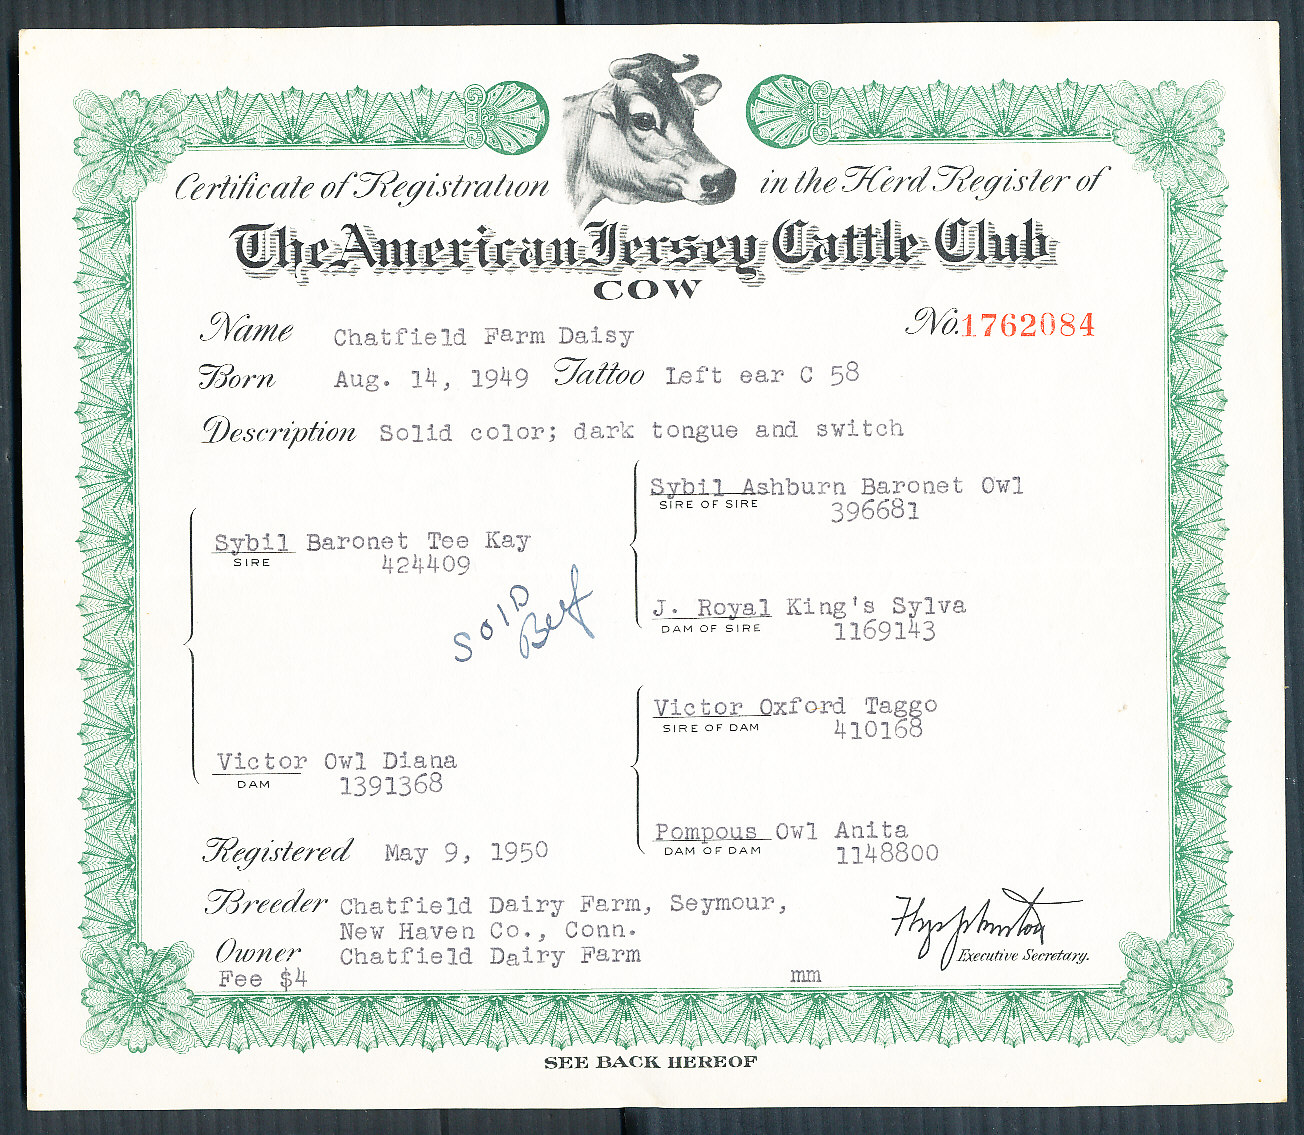 MA auction item 2257569 - USA. American Jersey Cattle Club 1949 ...